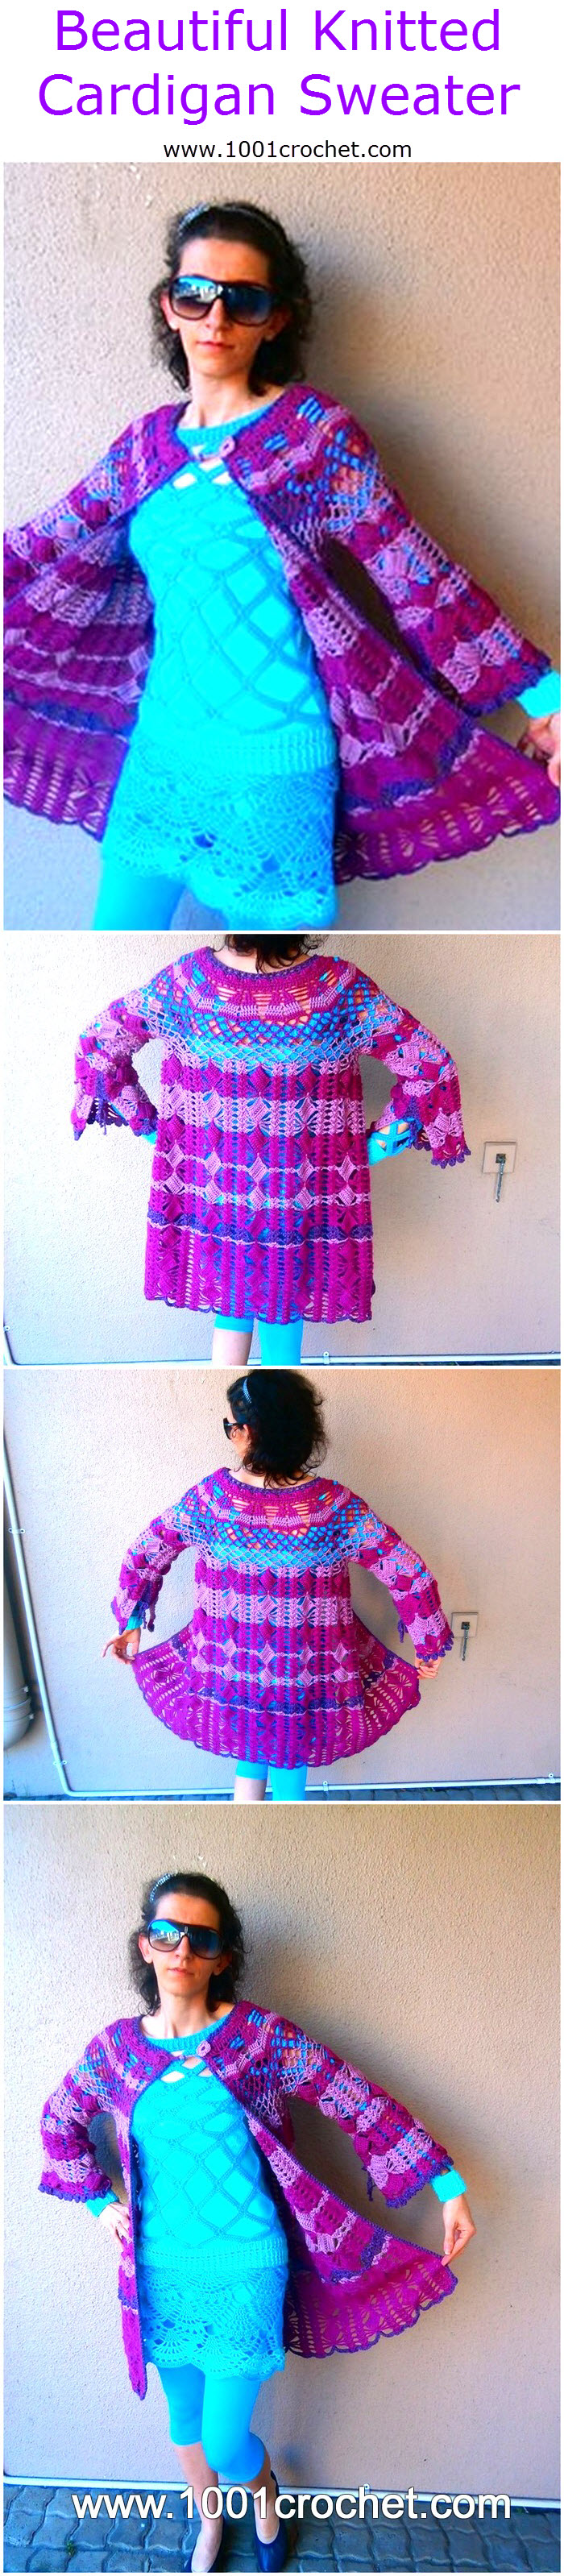 beautiful-knitted-cardigan-sweater